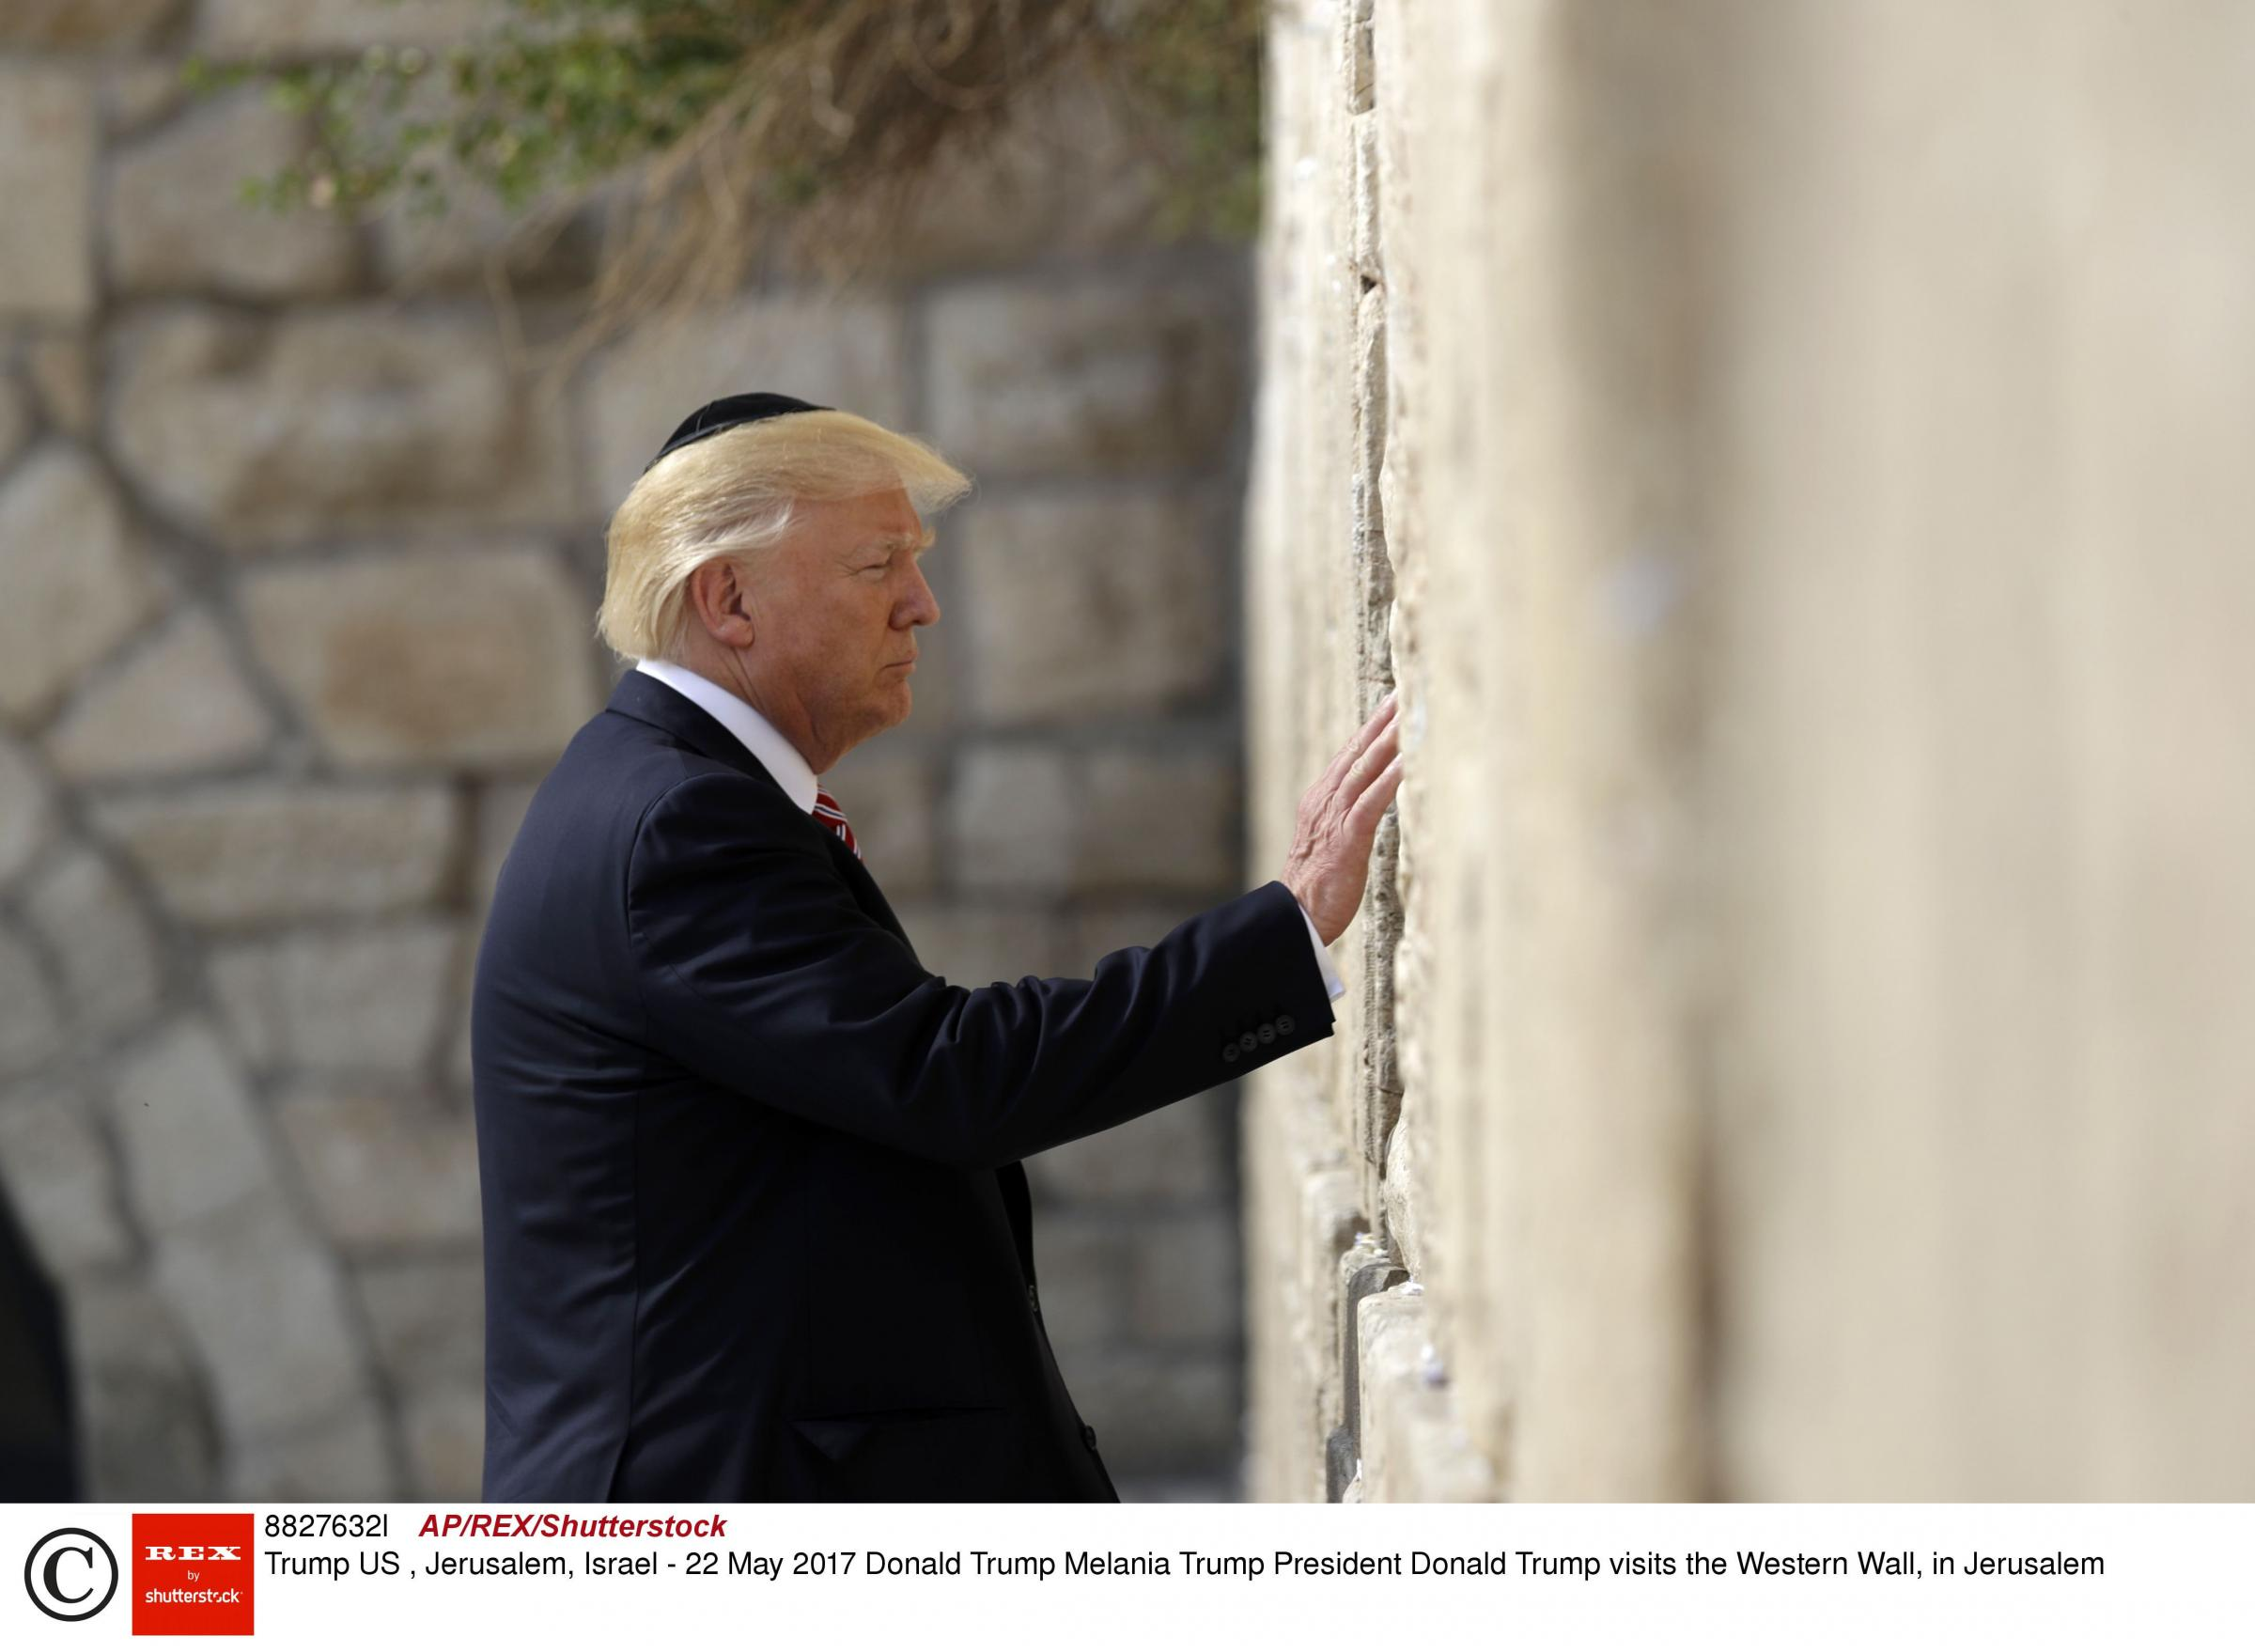 Donald Trump, pictured during an earlier visit to the Wailing Wall in Jerusalem, has declared the US recognises it as the Israeli capital.